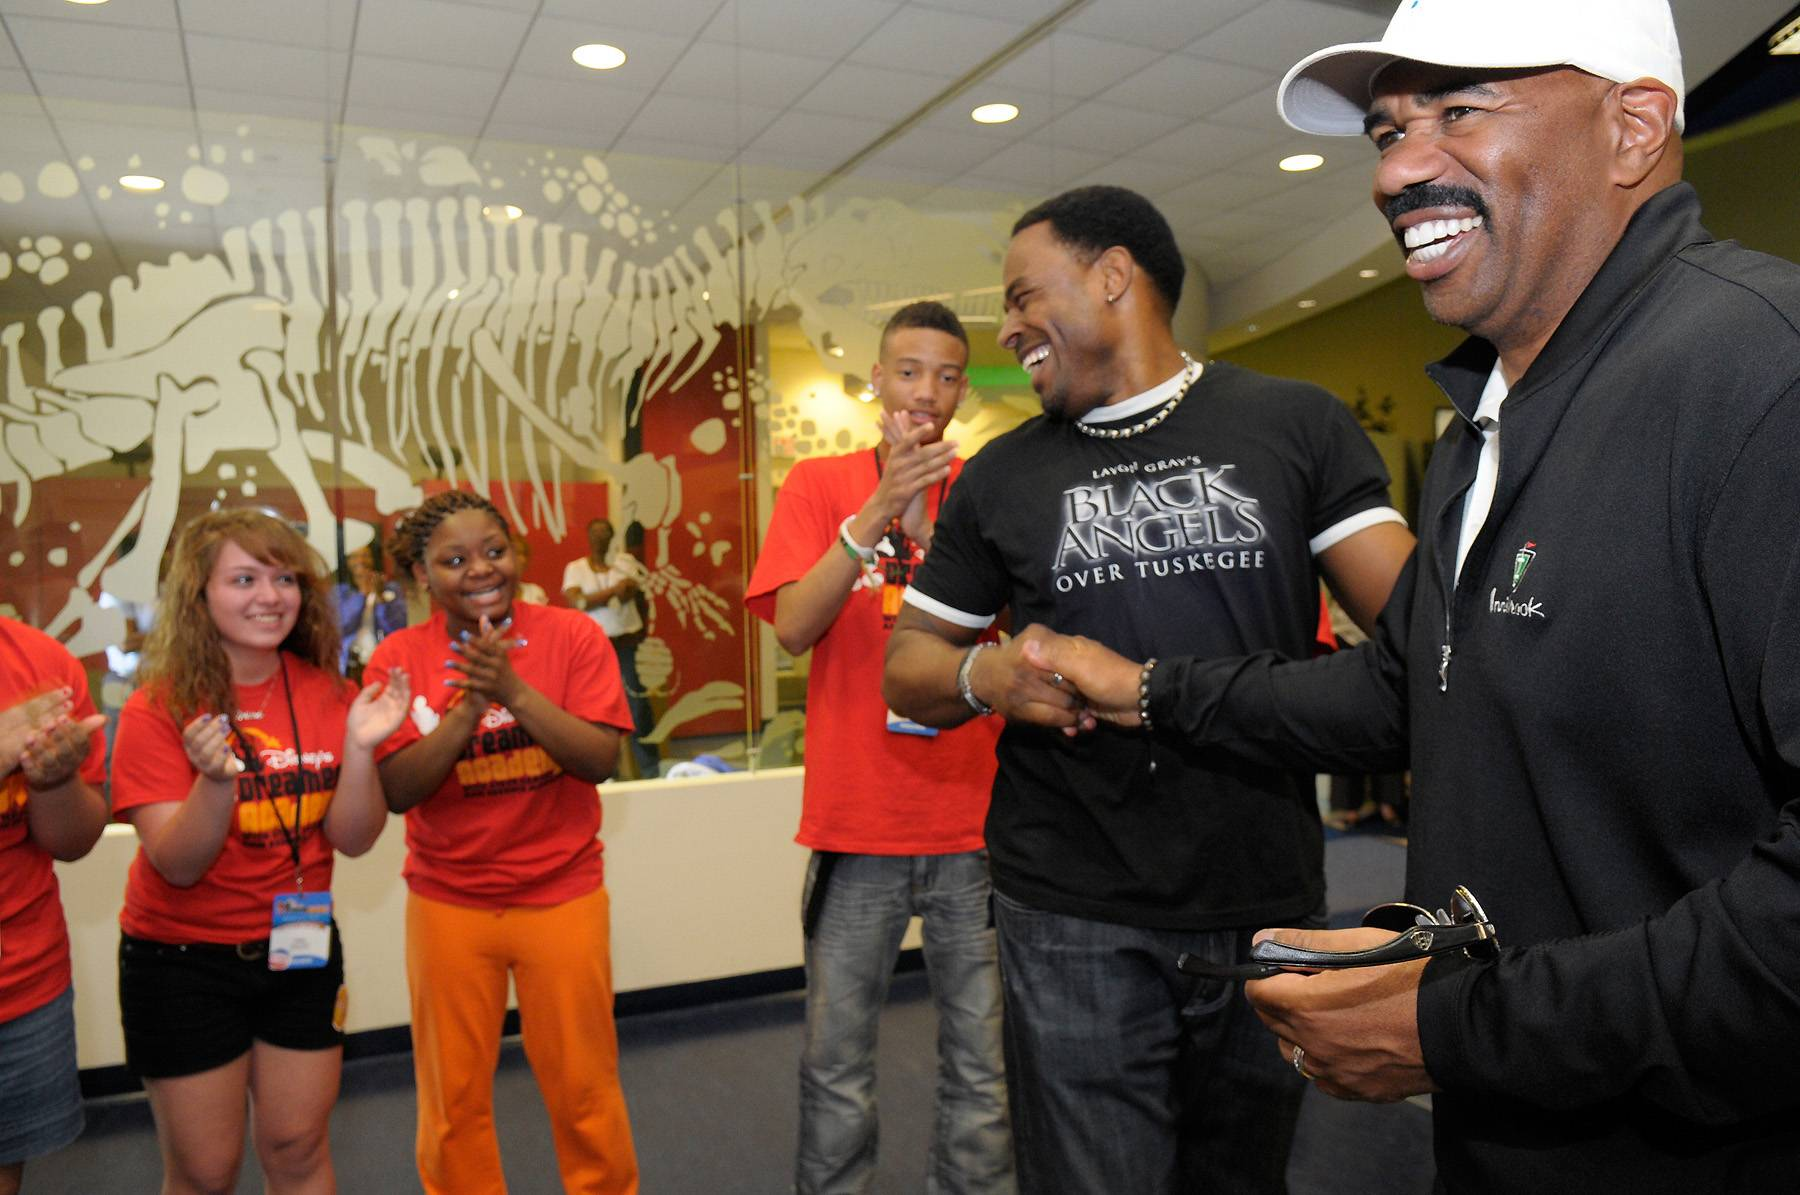 Surprise Guests - Steve Harvey and actor Lamman Rucker surprised the Dreamers at an acting workshop on March 10.  (Photo: Phelan Ebenhack)